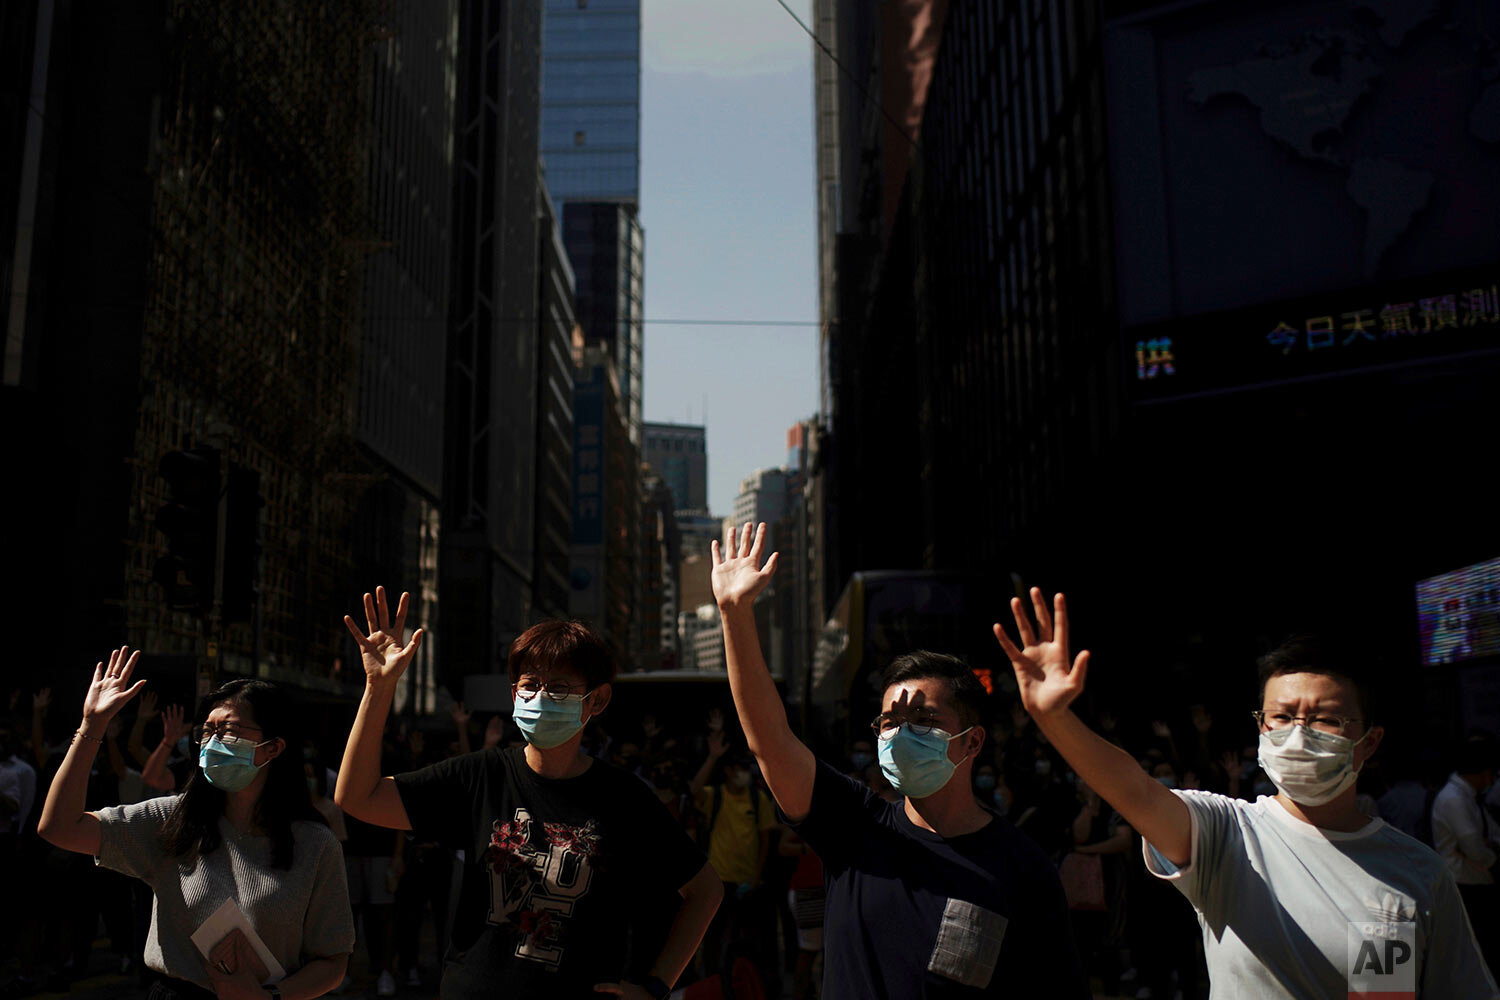 Pro-democracy protesters march in the city center ahead of reported plans by the city's embattled leader to deploy emergency powers to ban people from wearing masks in a bid to quash four months of anti-government demonstrations, Friday, Oct. 4, 2019, in Hong Kong. (AP Photo/Felipe Dana)